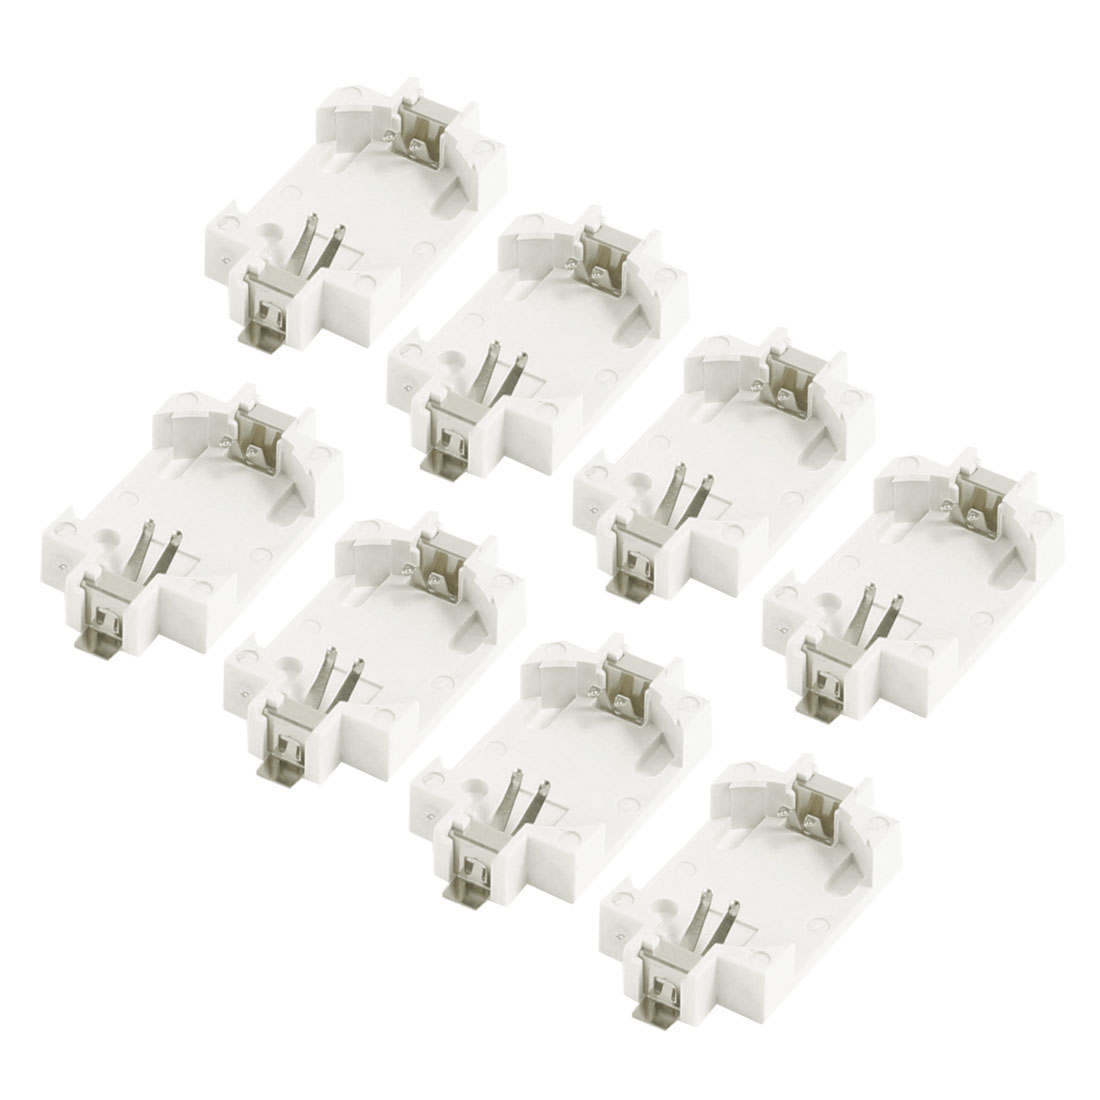 8 Pcs Off White Plastic CR2032 Cell Button Lithium Battery Socket Holder